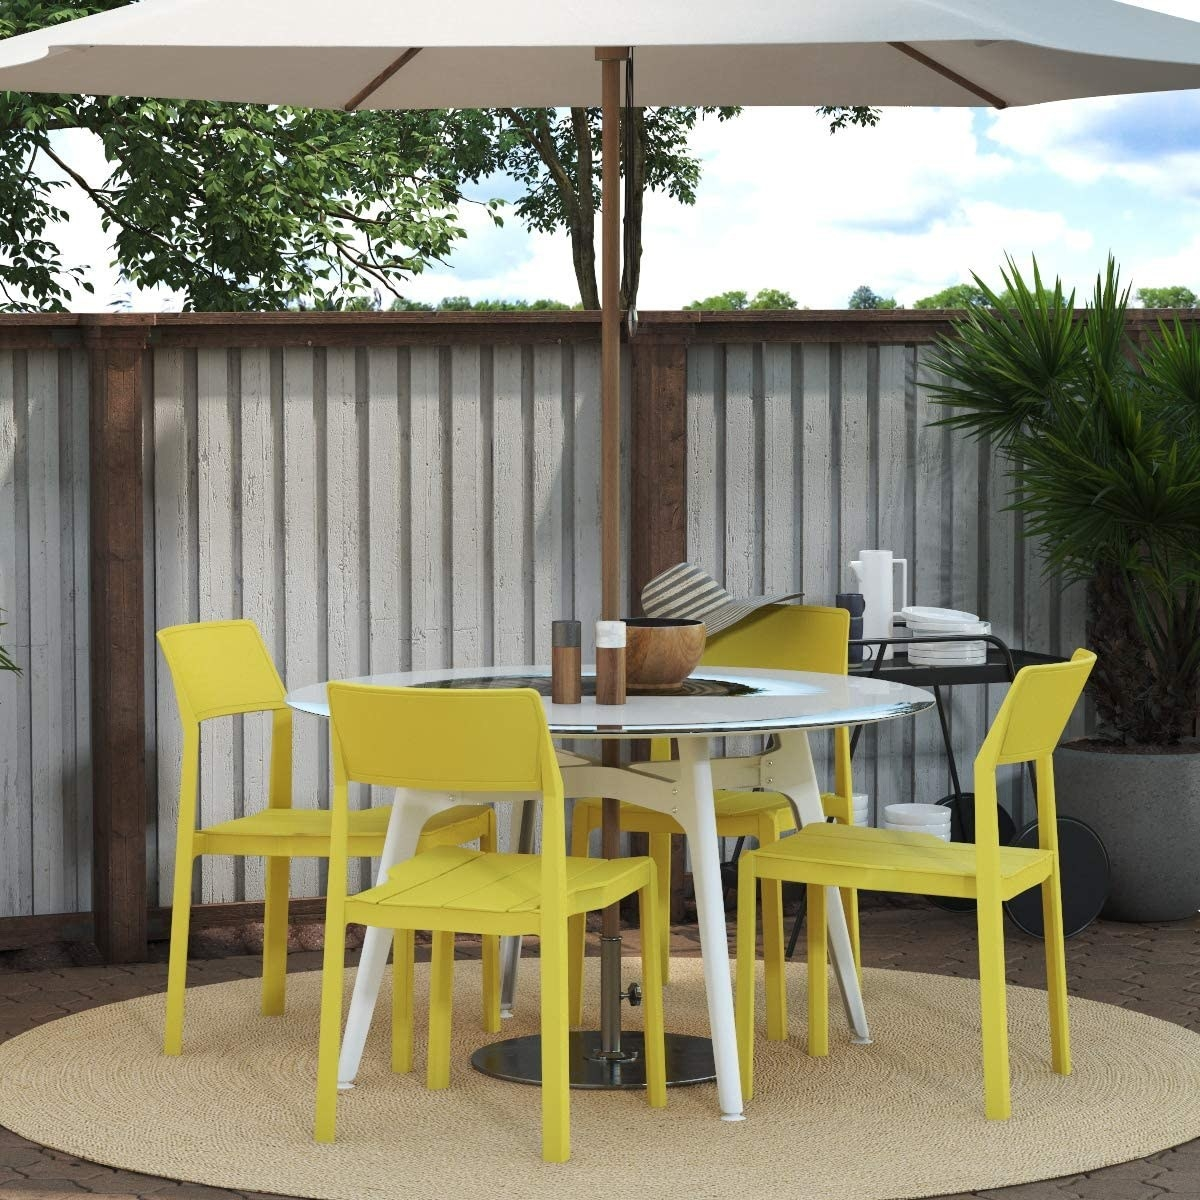 outdoor round table with simple yellow chairs around it